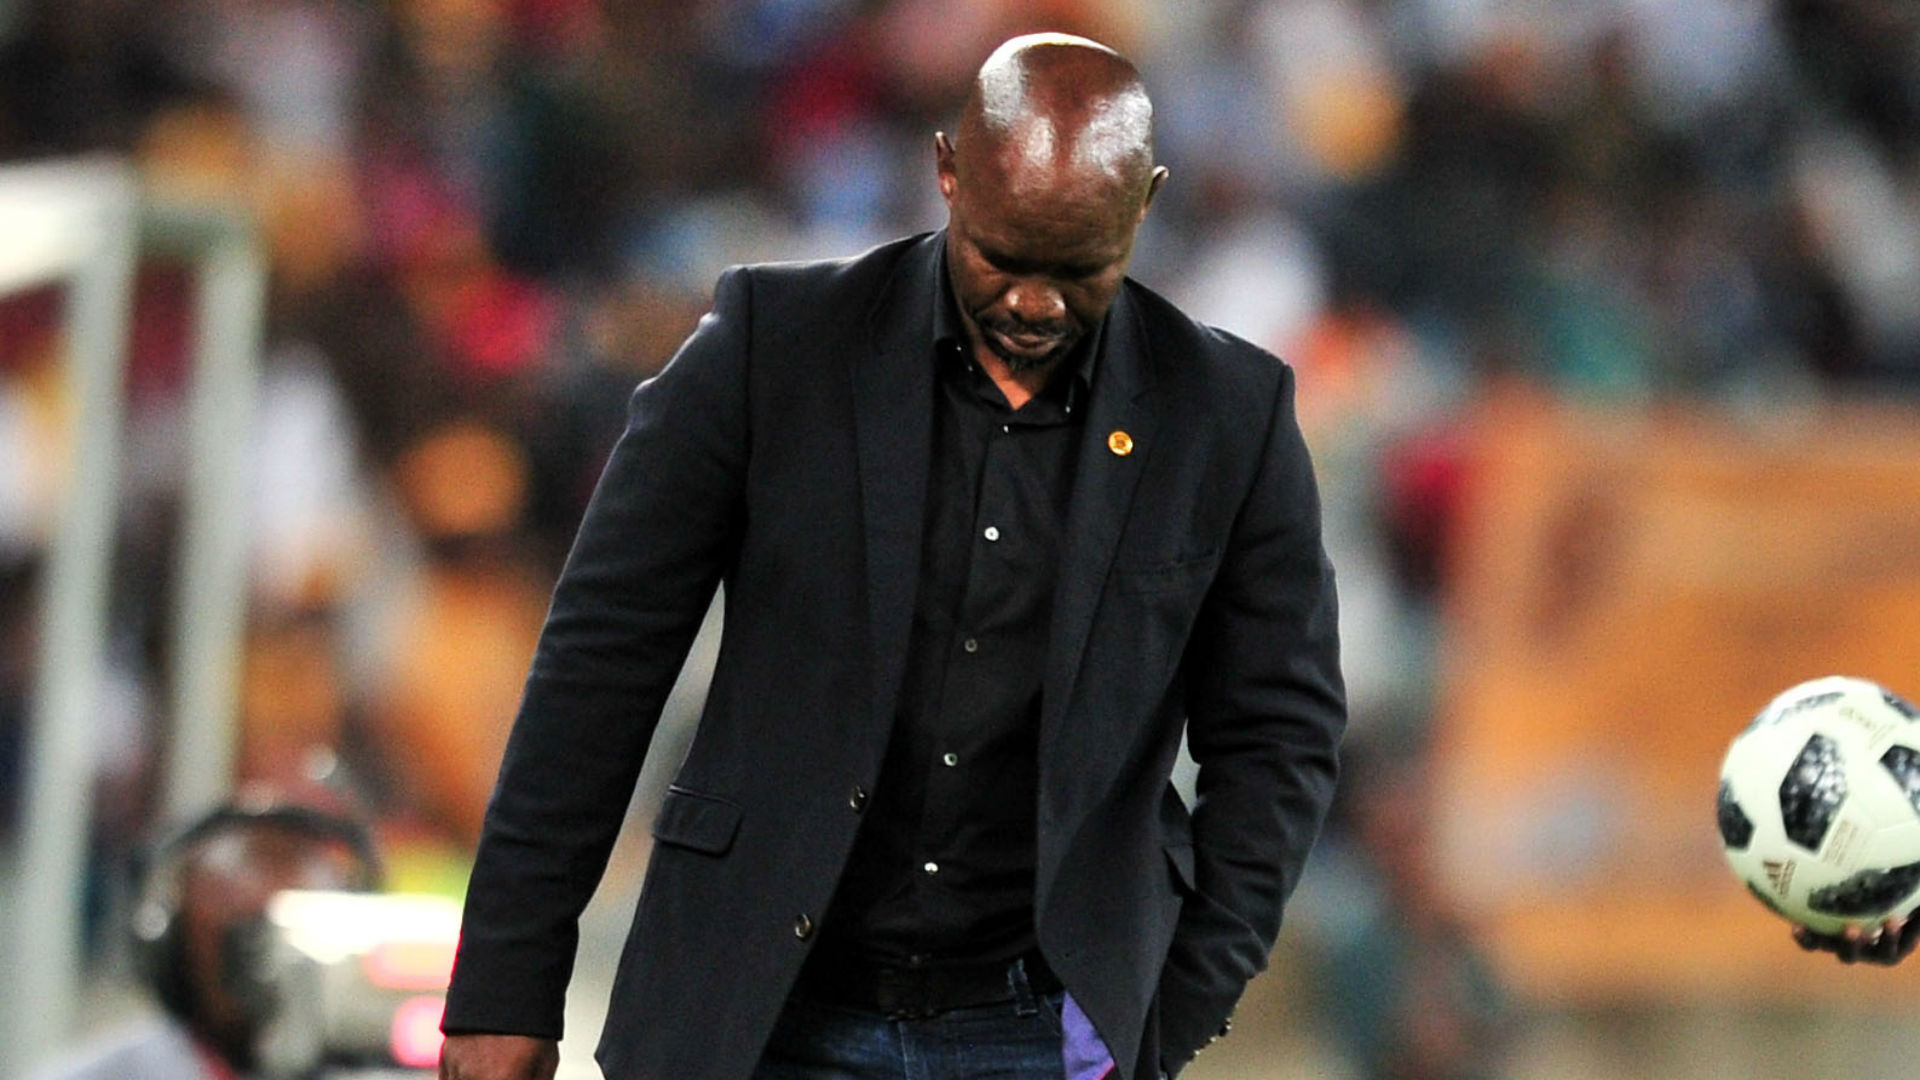 Durban security guard lays charges of assault against Mamelodi Sundowns coach Mosimane